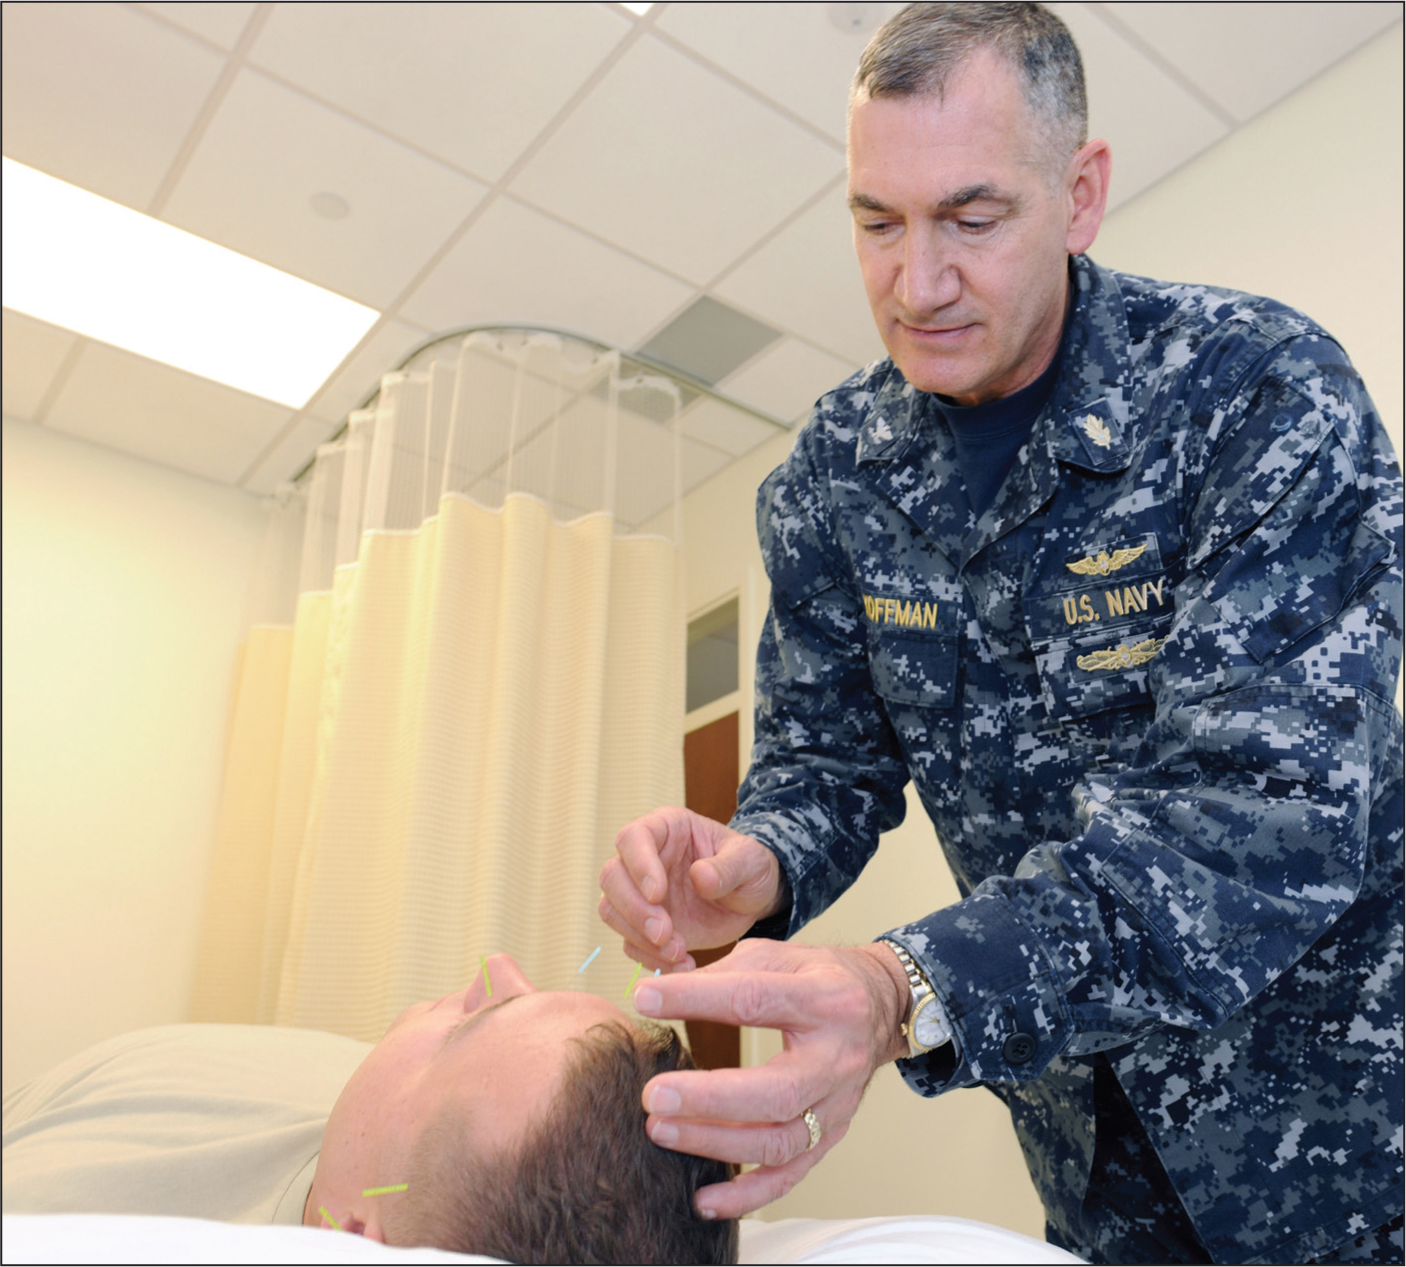 Robert L. Koffman, MD, MPH, inserting acupuncture needles into a soldier at the National Intrepid Center of Excellence in Bethesda, Maryland.Image courtesy of National Intrepid Center of Excellence.